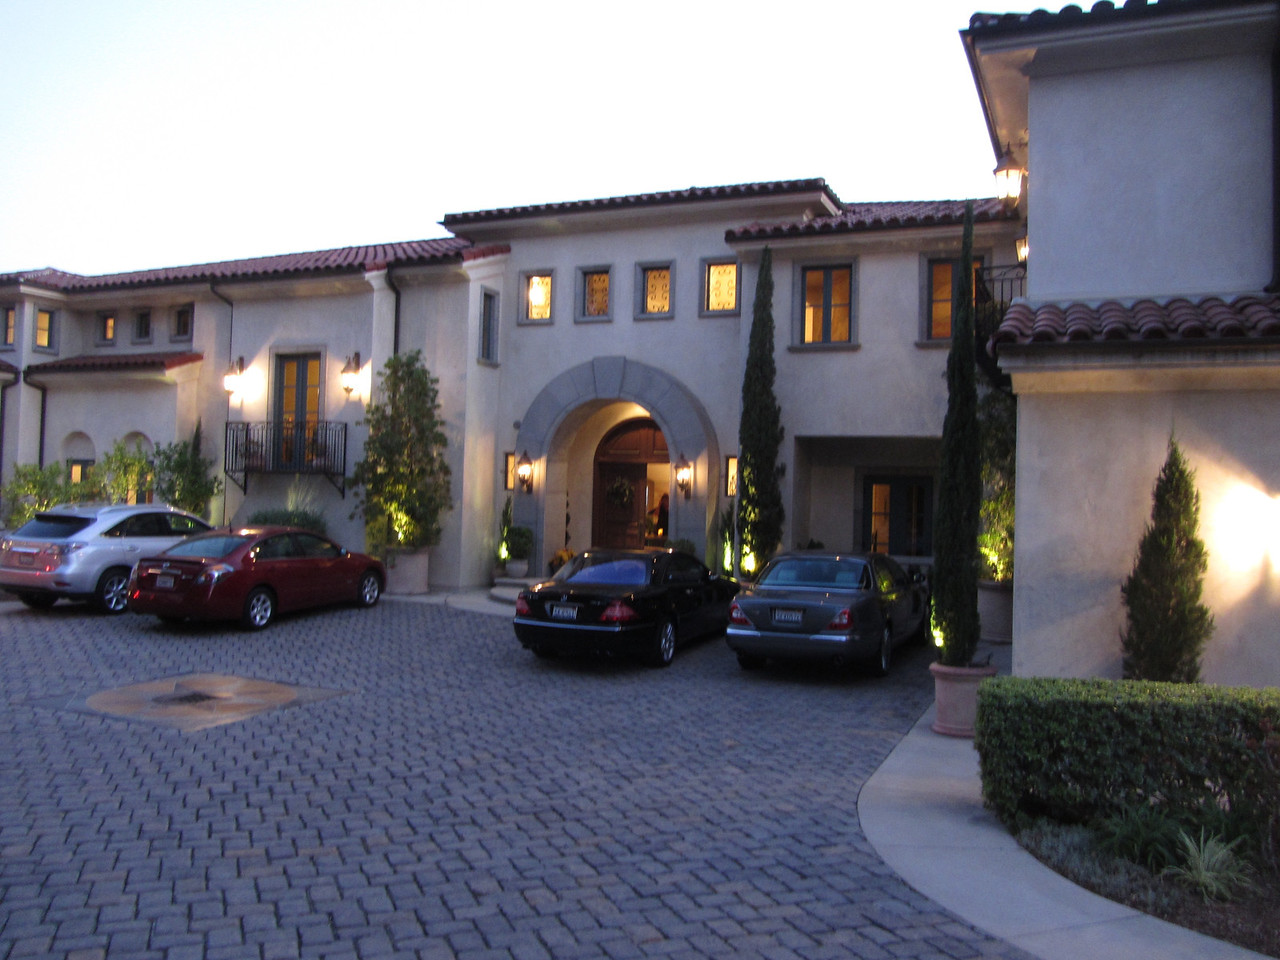 Maggiano Residence at twilight.